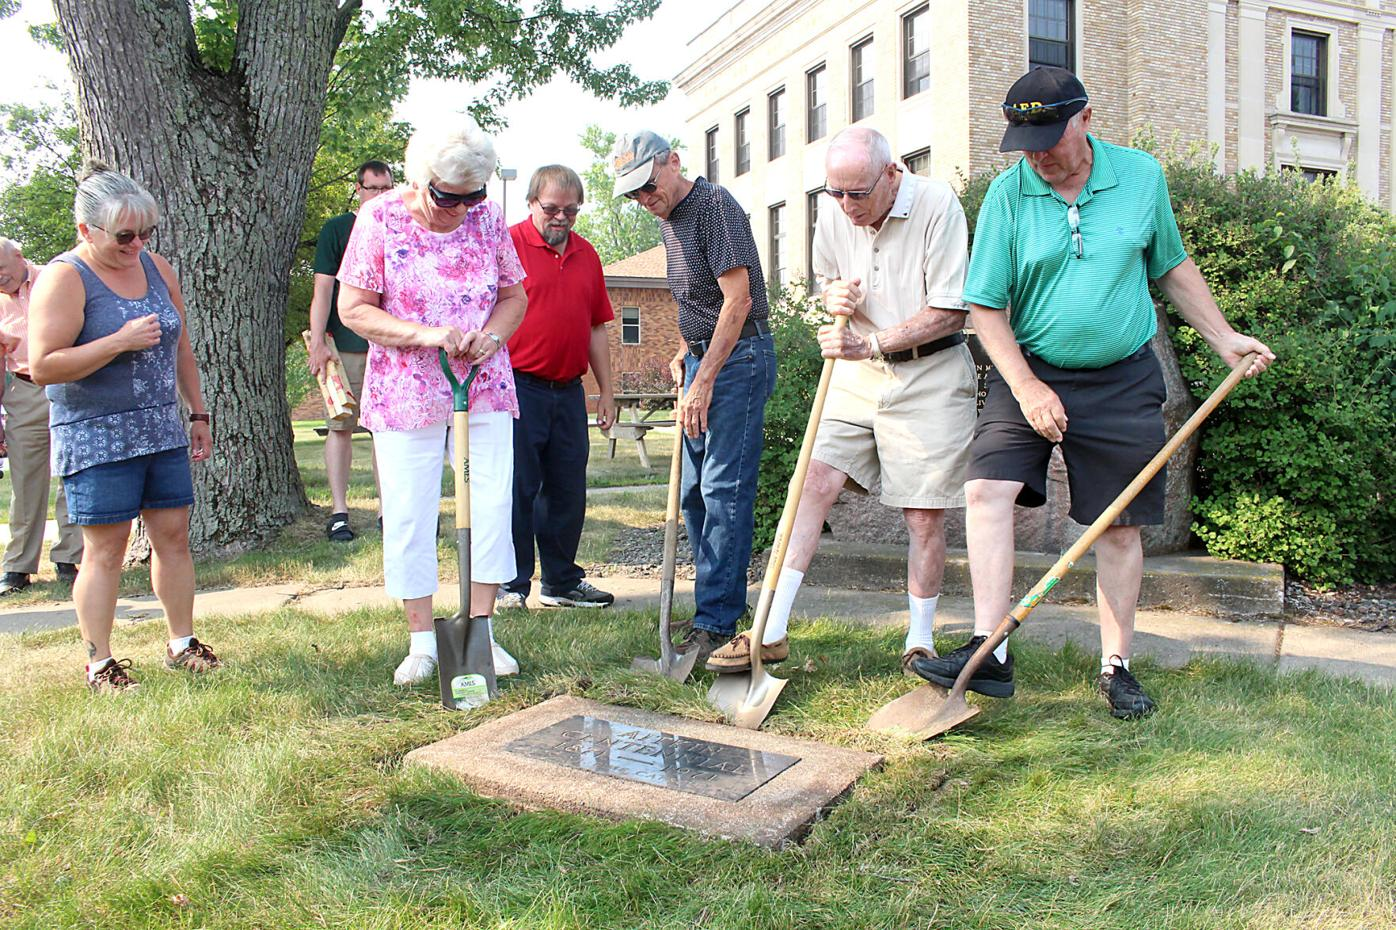 City opens up 1971 time capsule that was buried for Aitkin Centennial